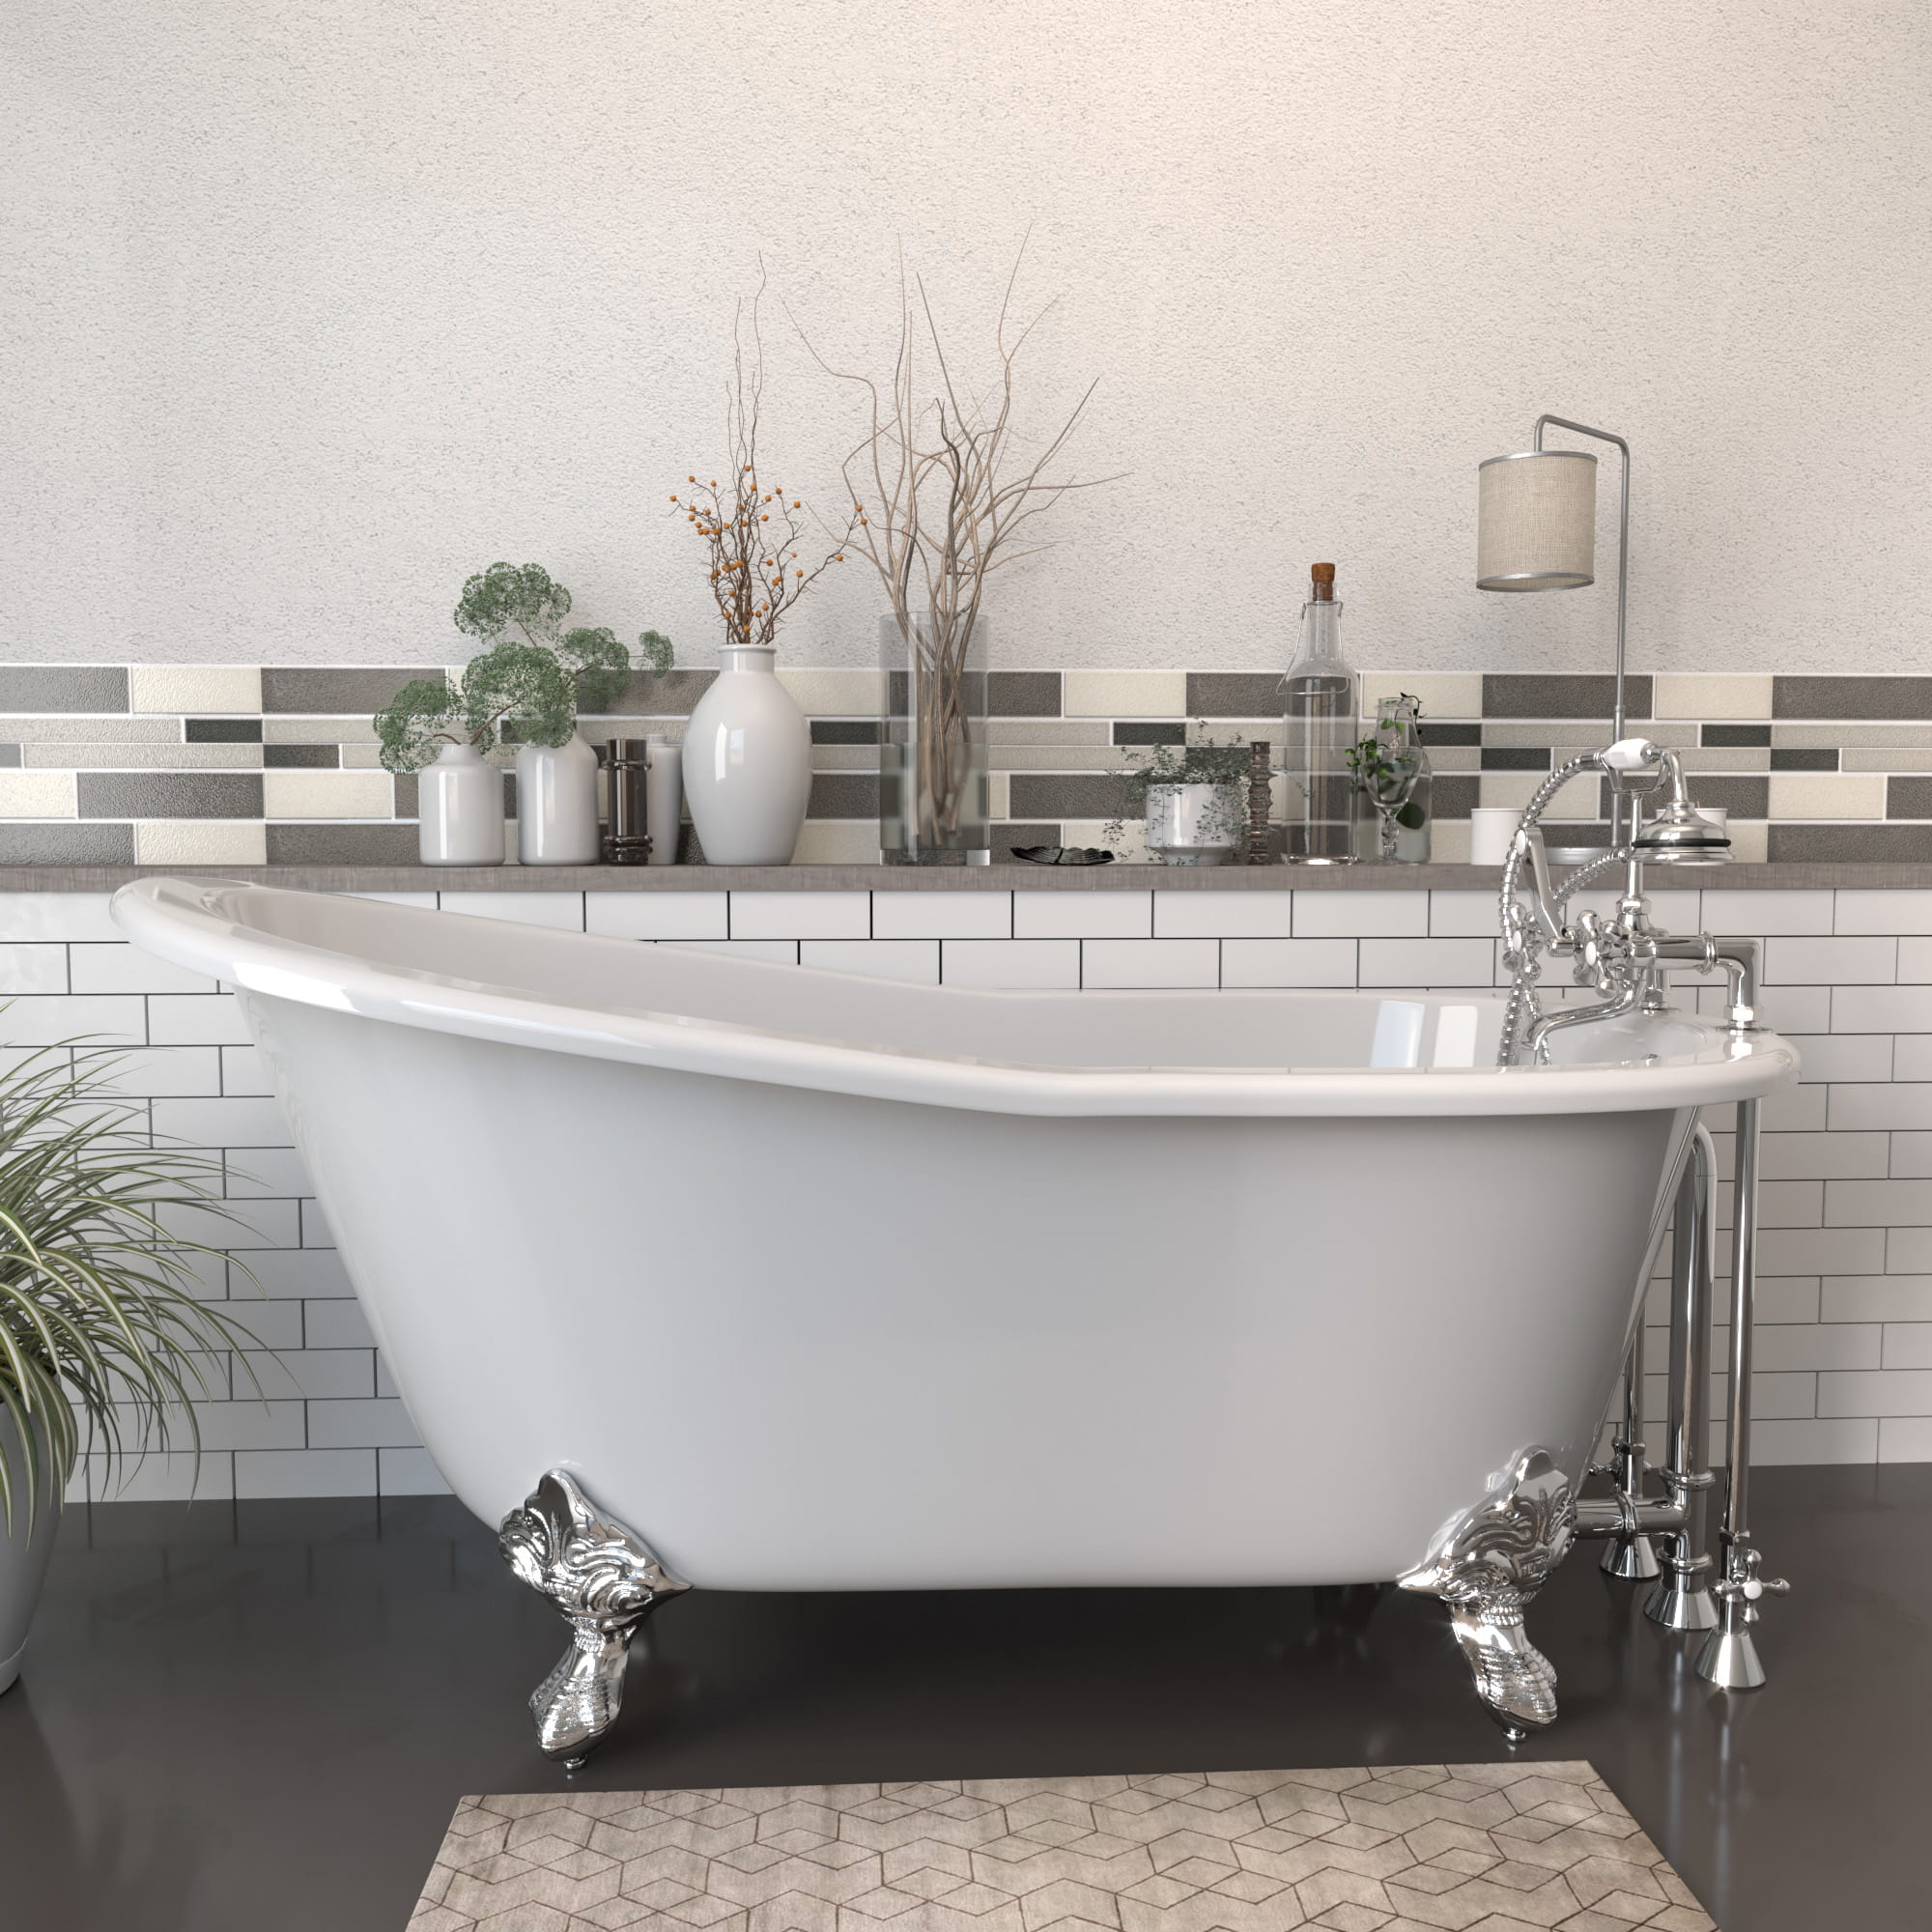 """Cast Iron Slipper Clawfoot Tub 61"""" X 30"""" with 7"""" Deck Mount Faucet Drillings and Complete Polished Chrome Plumbing Package"""